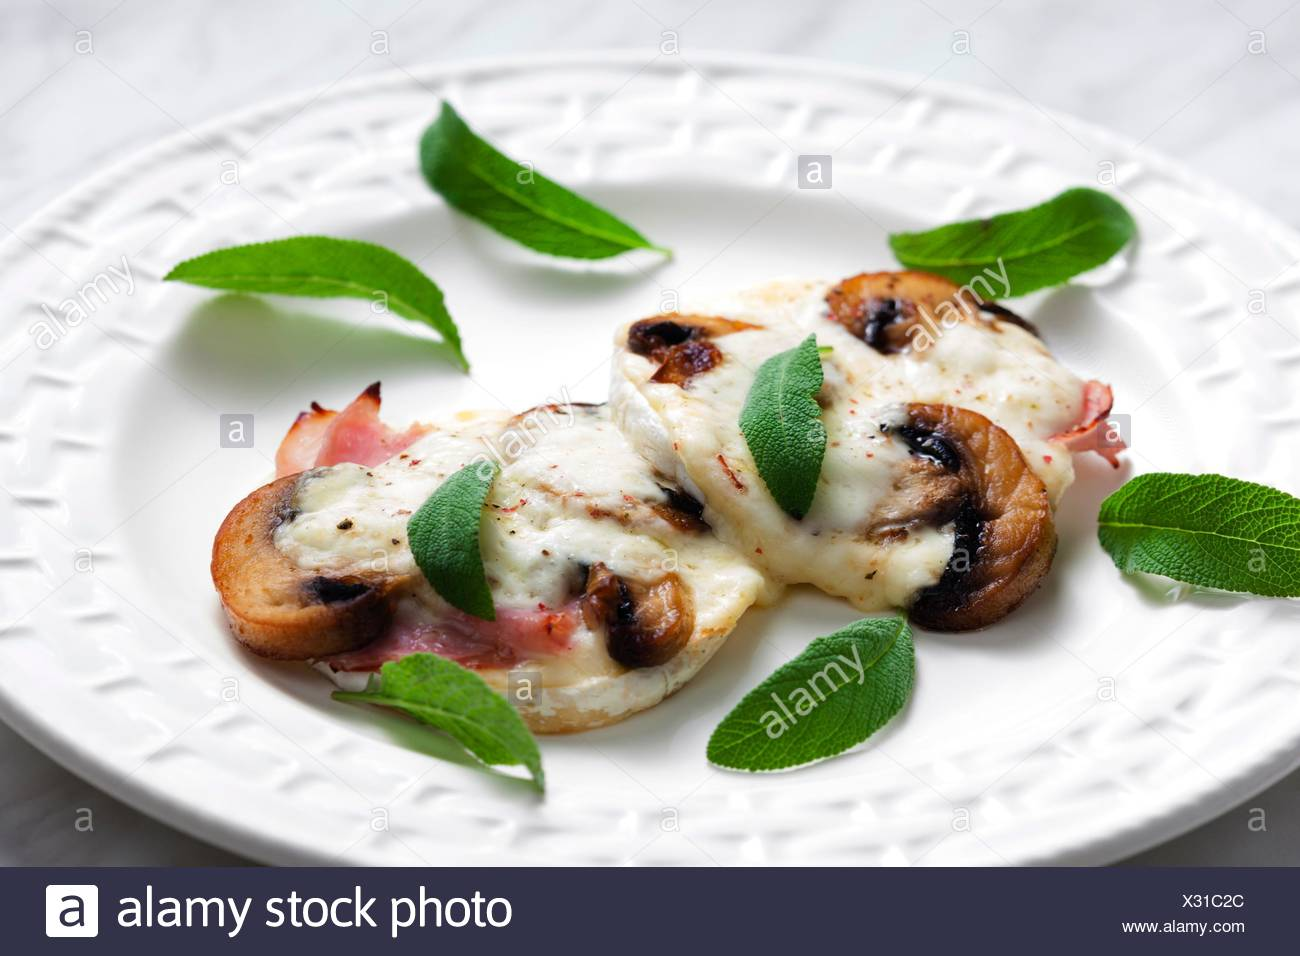 cheese brie baked with mushrooms. - Stock Image